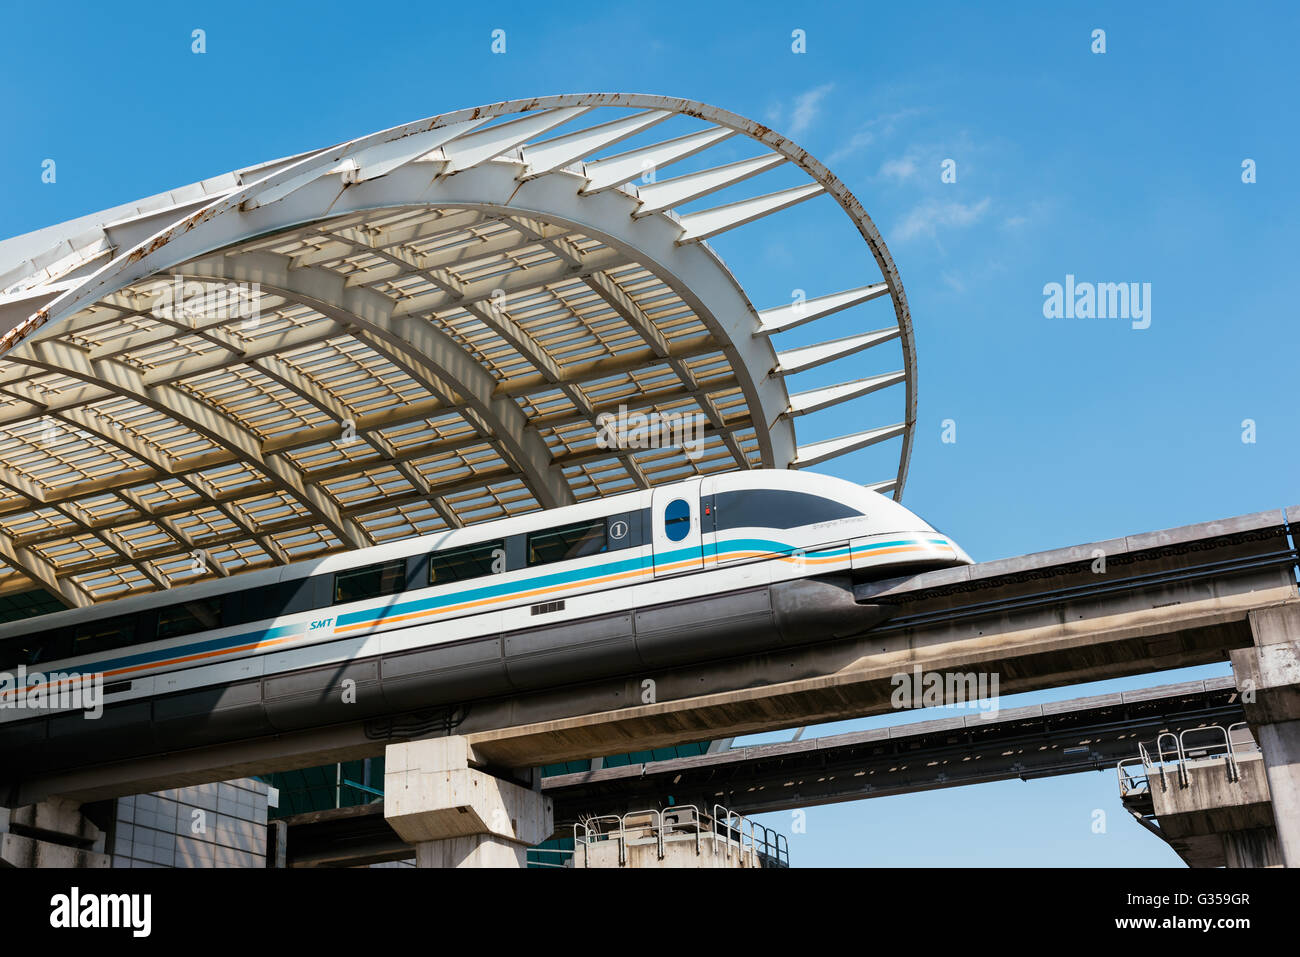 Maglev Train in Shanghai - China. - Stock Image